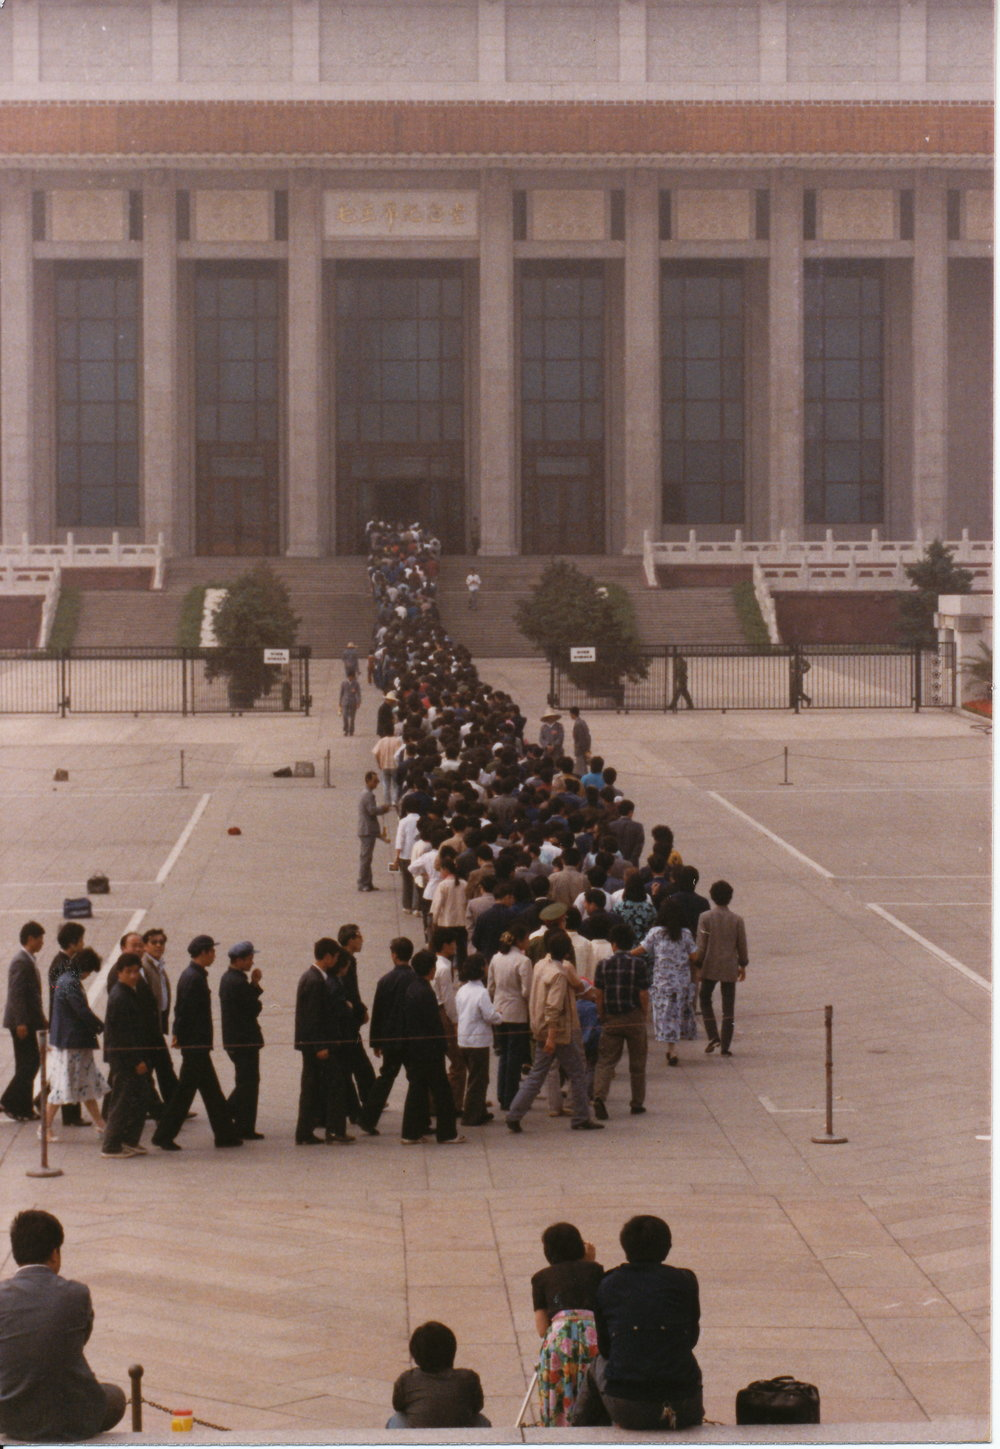 Queue waiting to see the Frederick J. Brown Retrospective exhibit, Museum of the Chinese Revolution (now the National Museum of China), Tiananmen Square, Beijing, Spring 1988